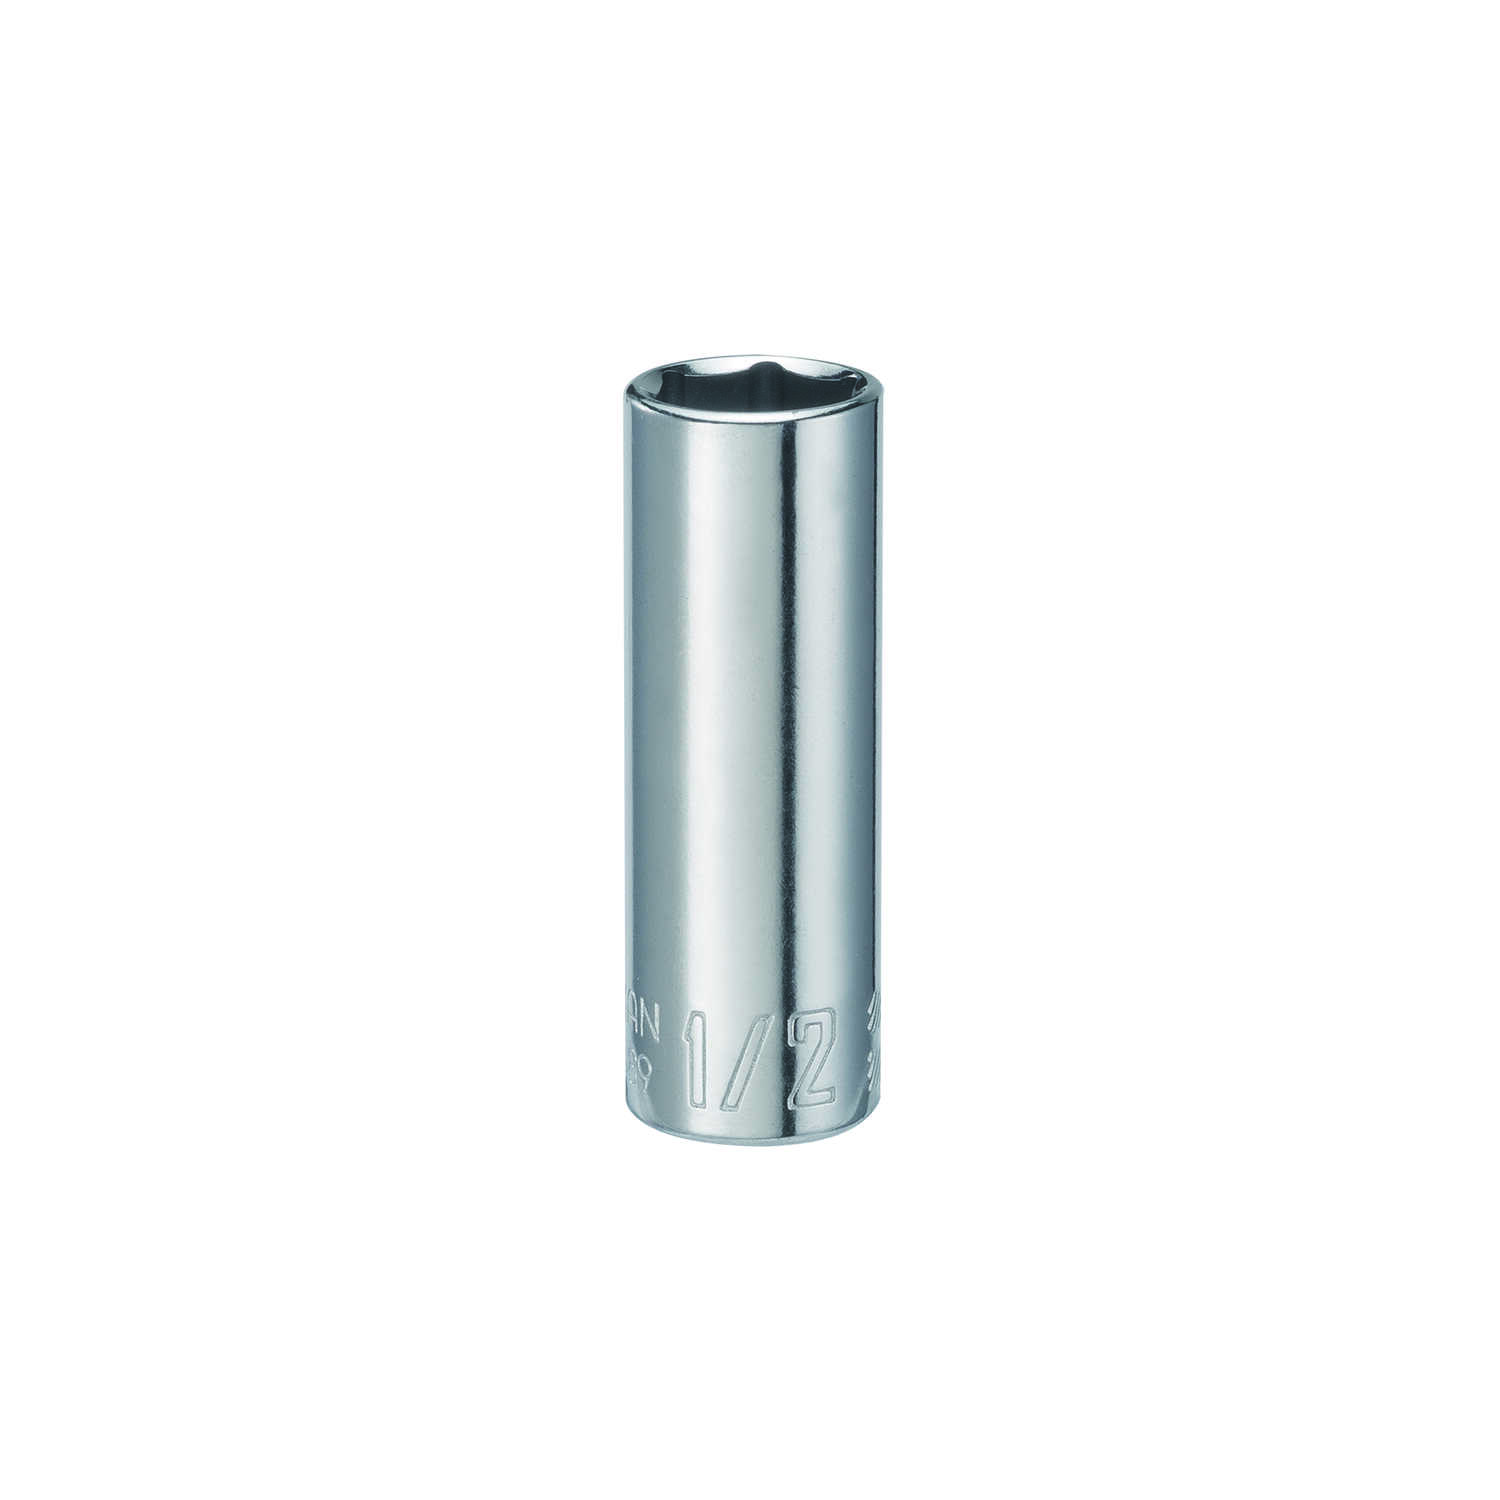 Craftsman  1/2 in.  x 1/4 in. drive  SAE  6 Point Deep  Socket  1 pc.